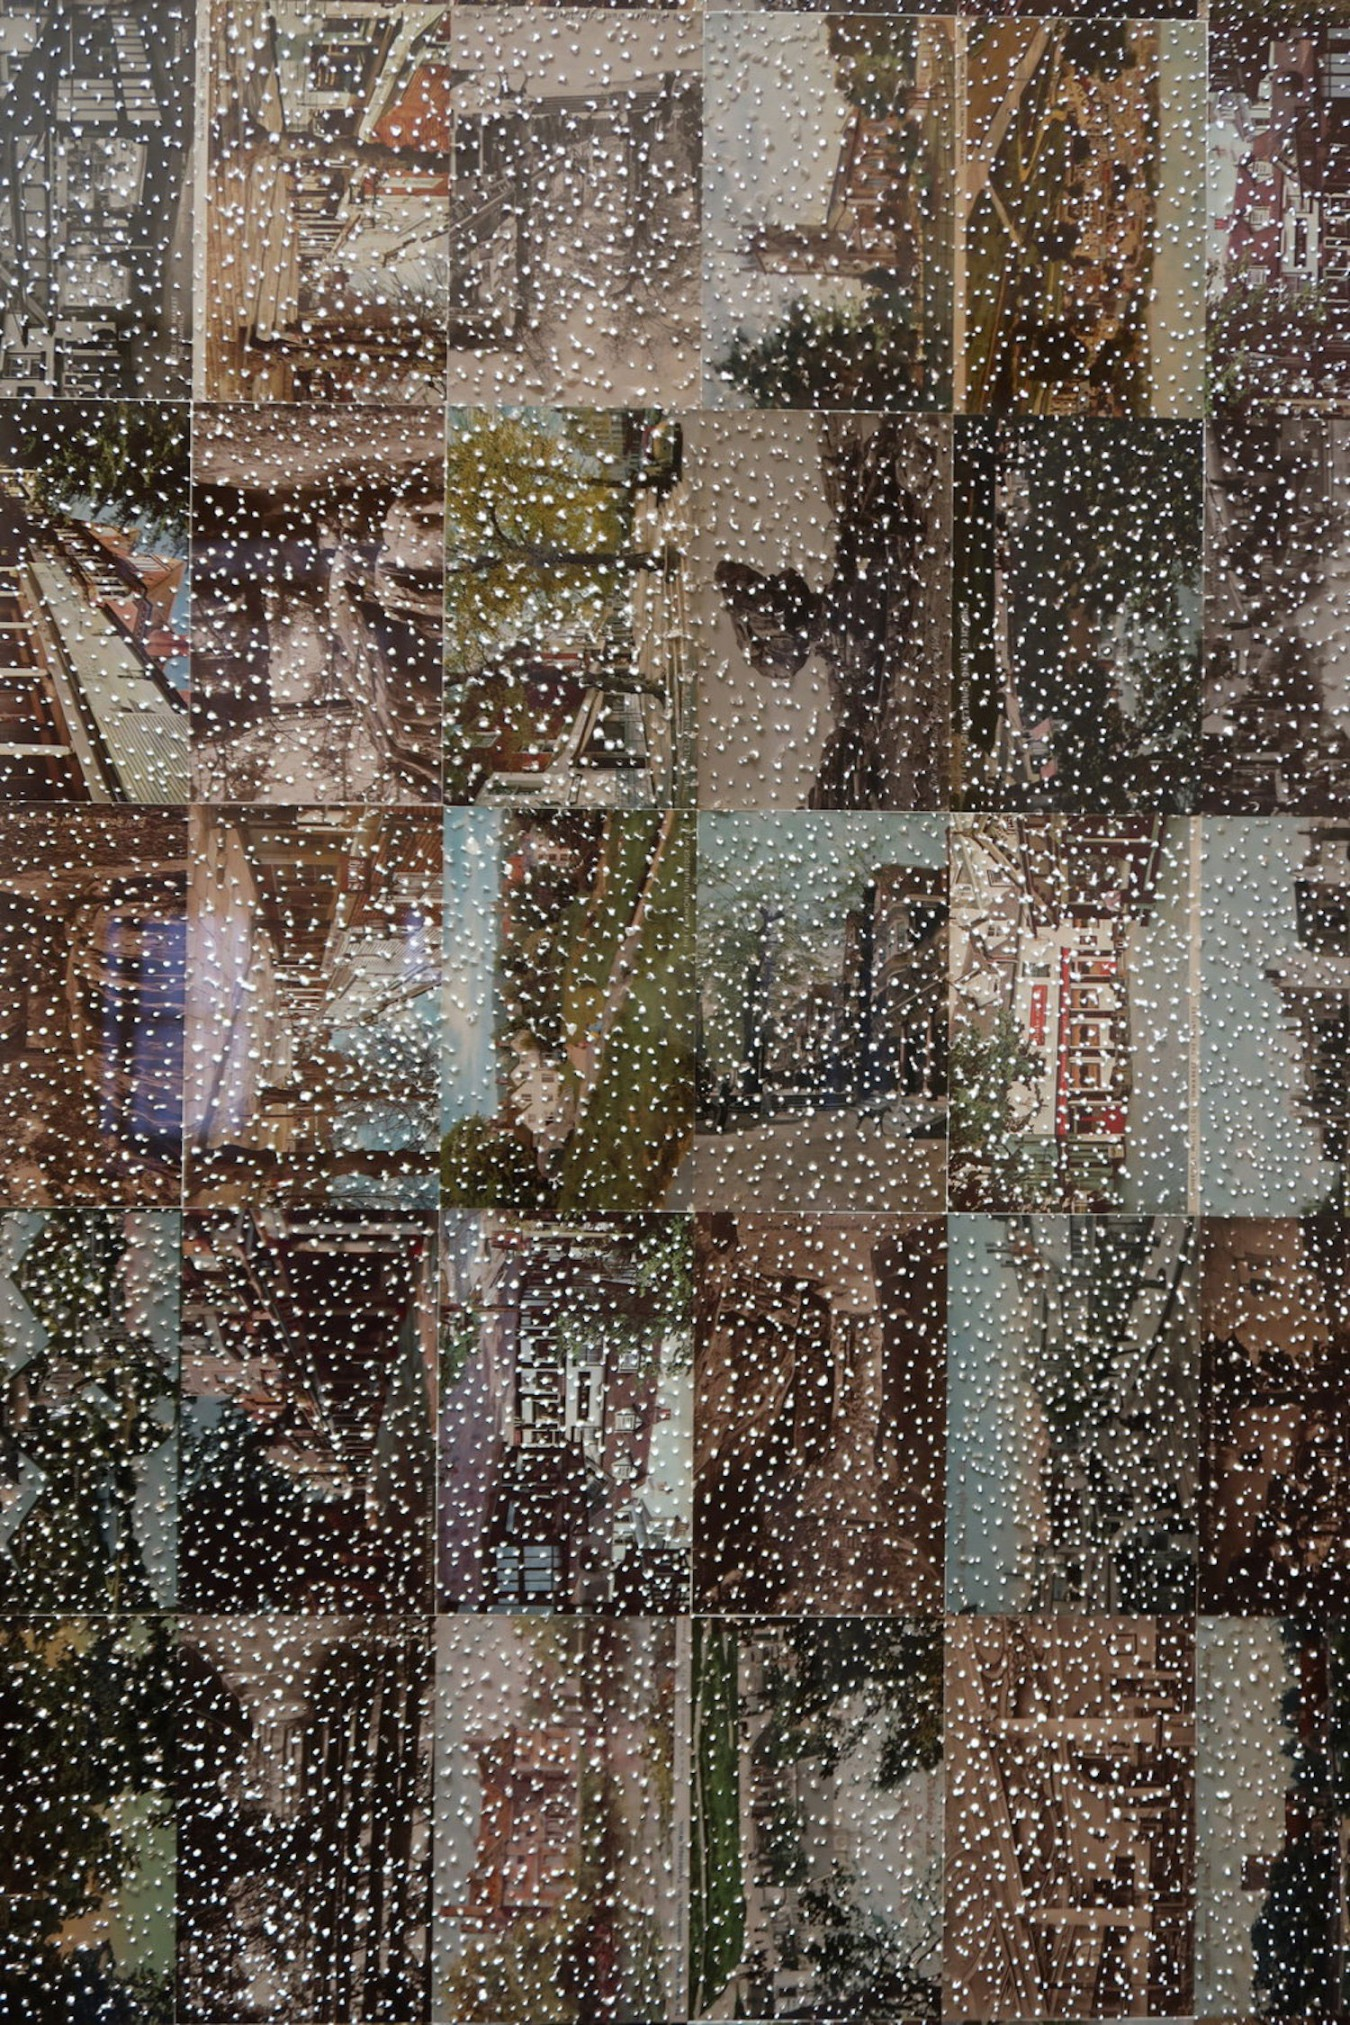 'Greetings from Tunbridge Wells', made from postcards of the town with a pin pricked surface.